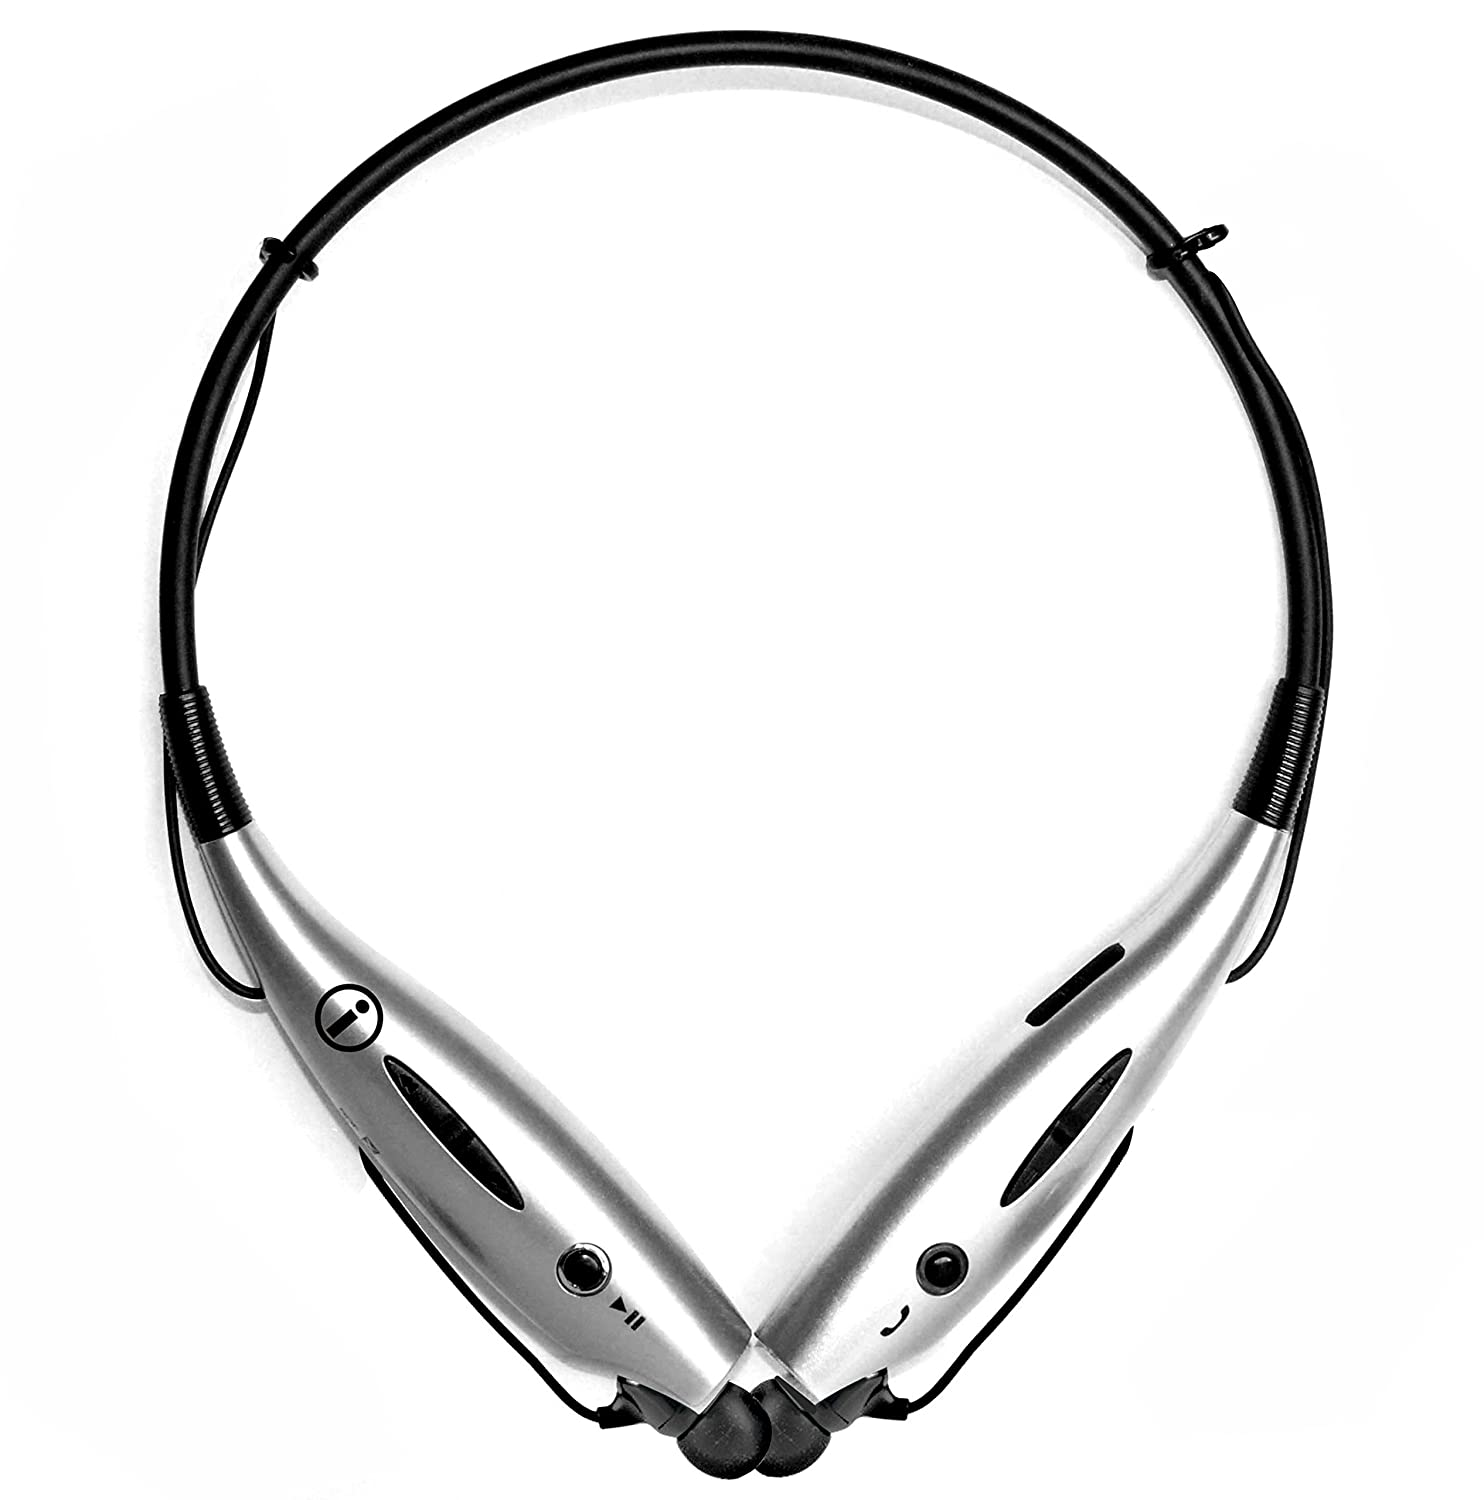 Universal Bluetooth Neckband Headphones S Gear -7000 Wireless Headset Sweatproof Running Gym Exercise Stereo Earphones Noise Cancelling Earbuds Cordless Silver